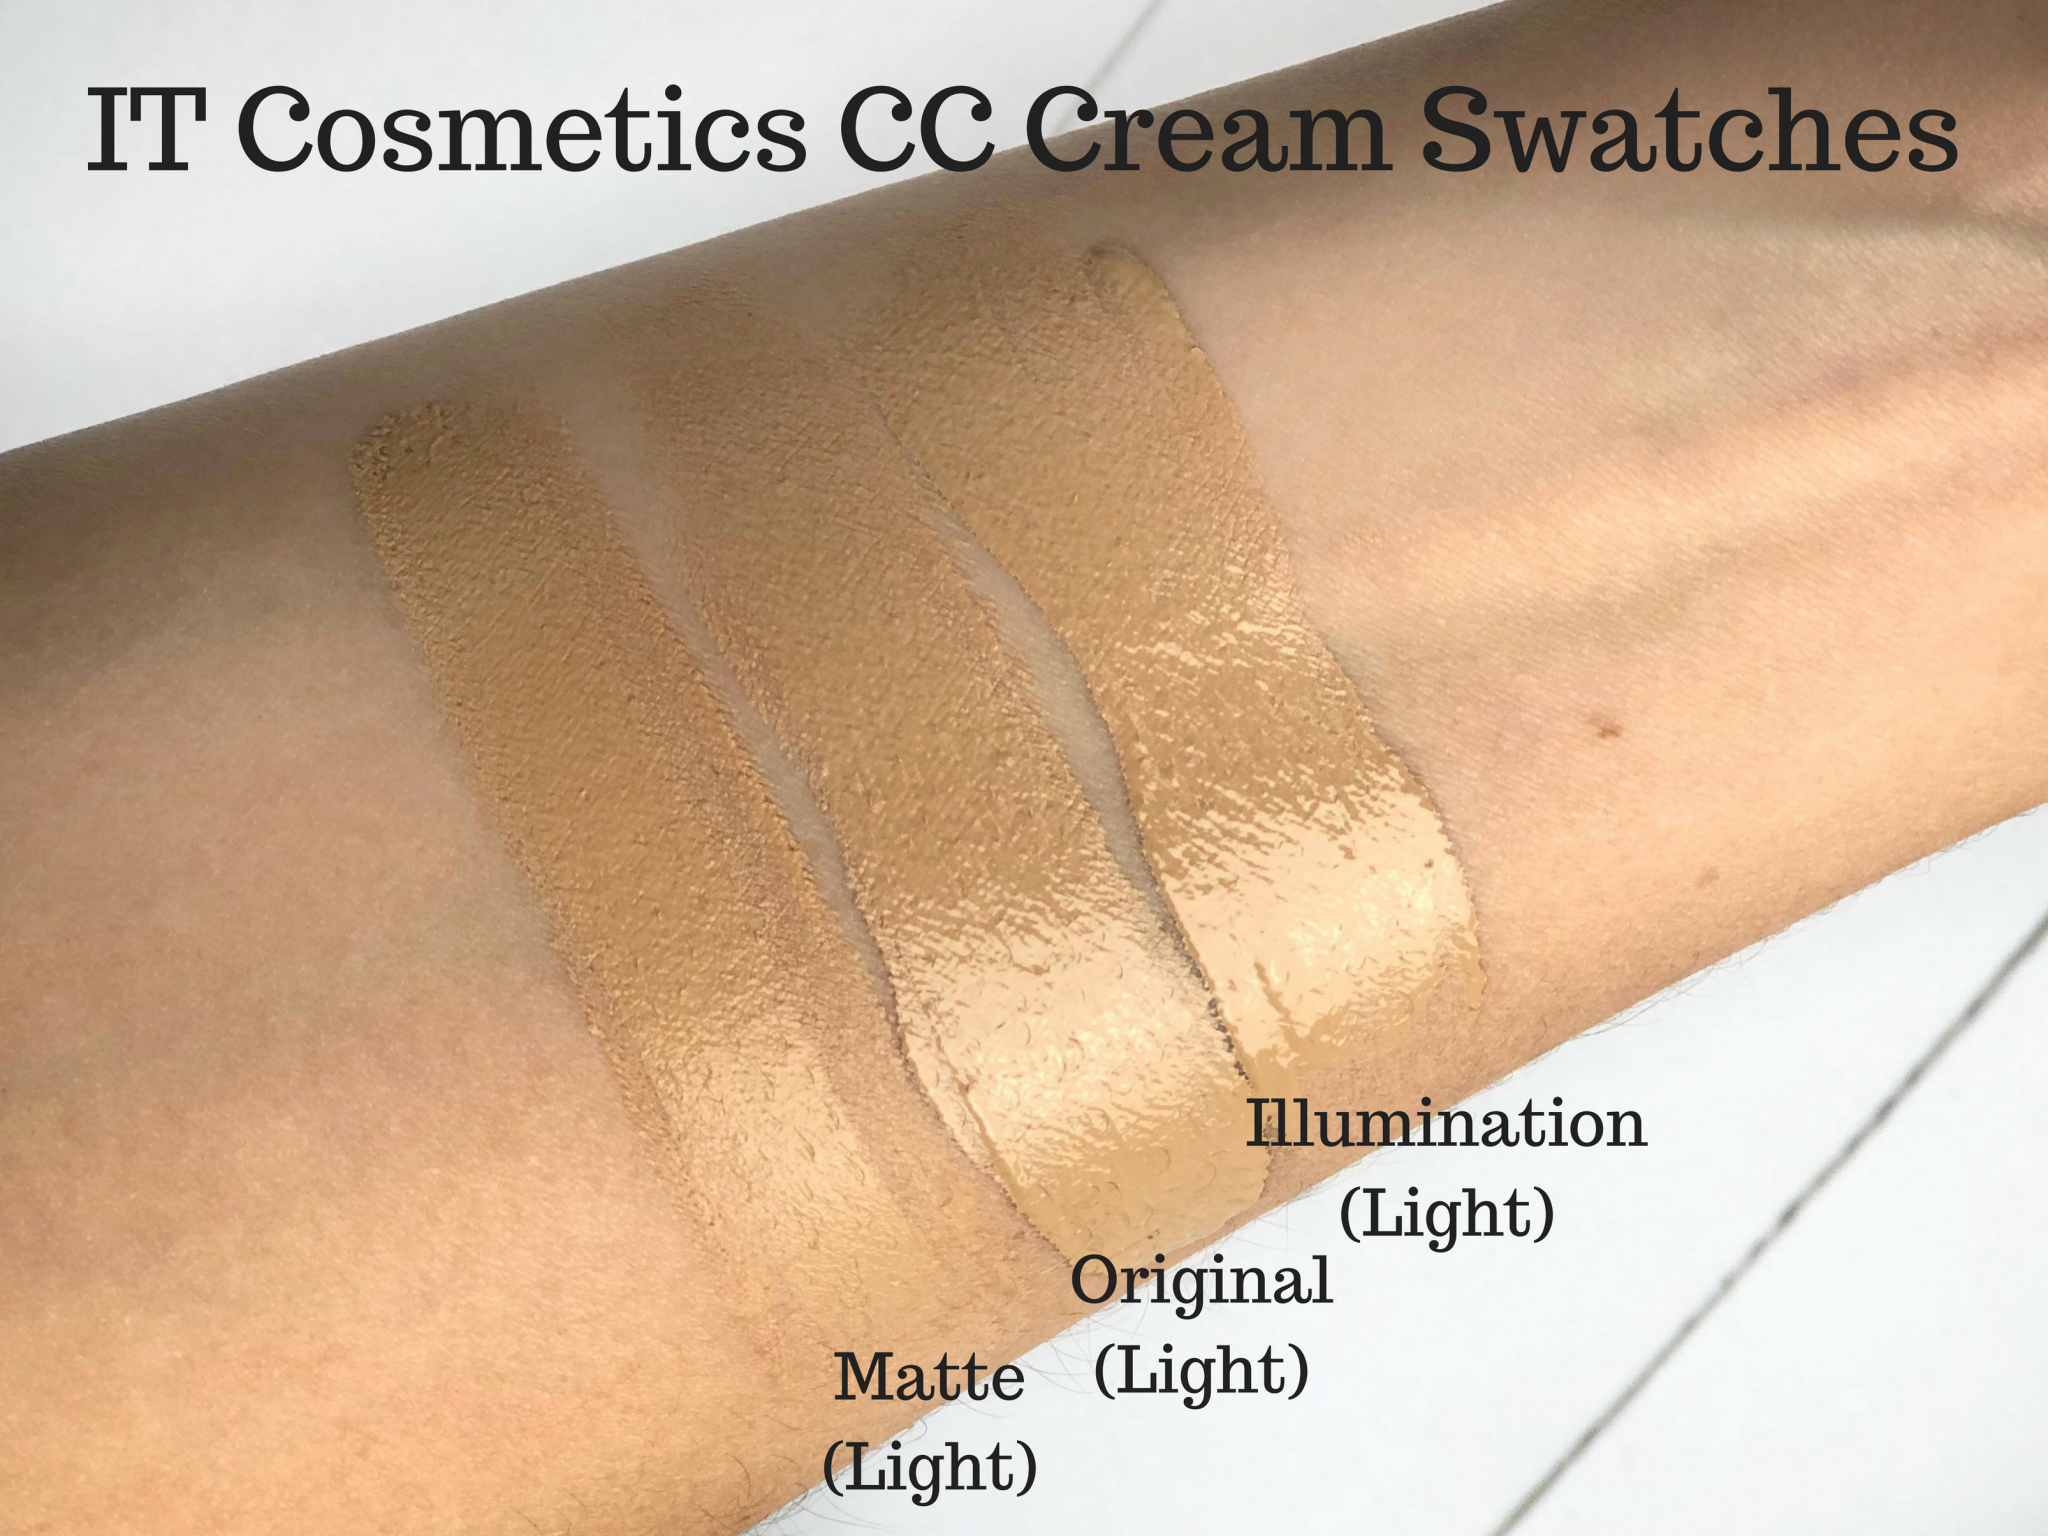 IT Cosmetics CC Cream Swatches